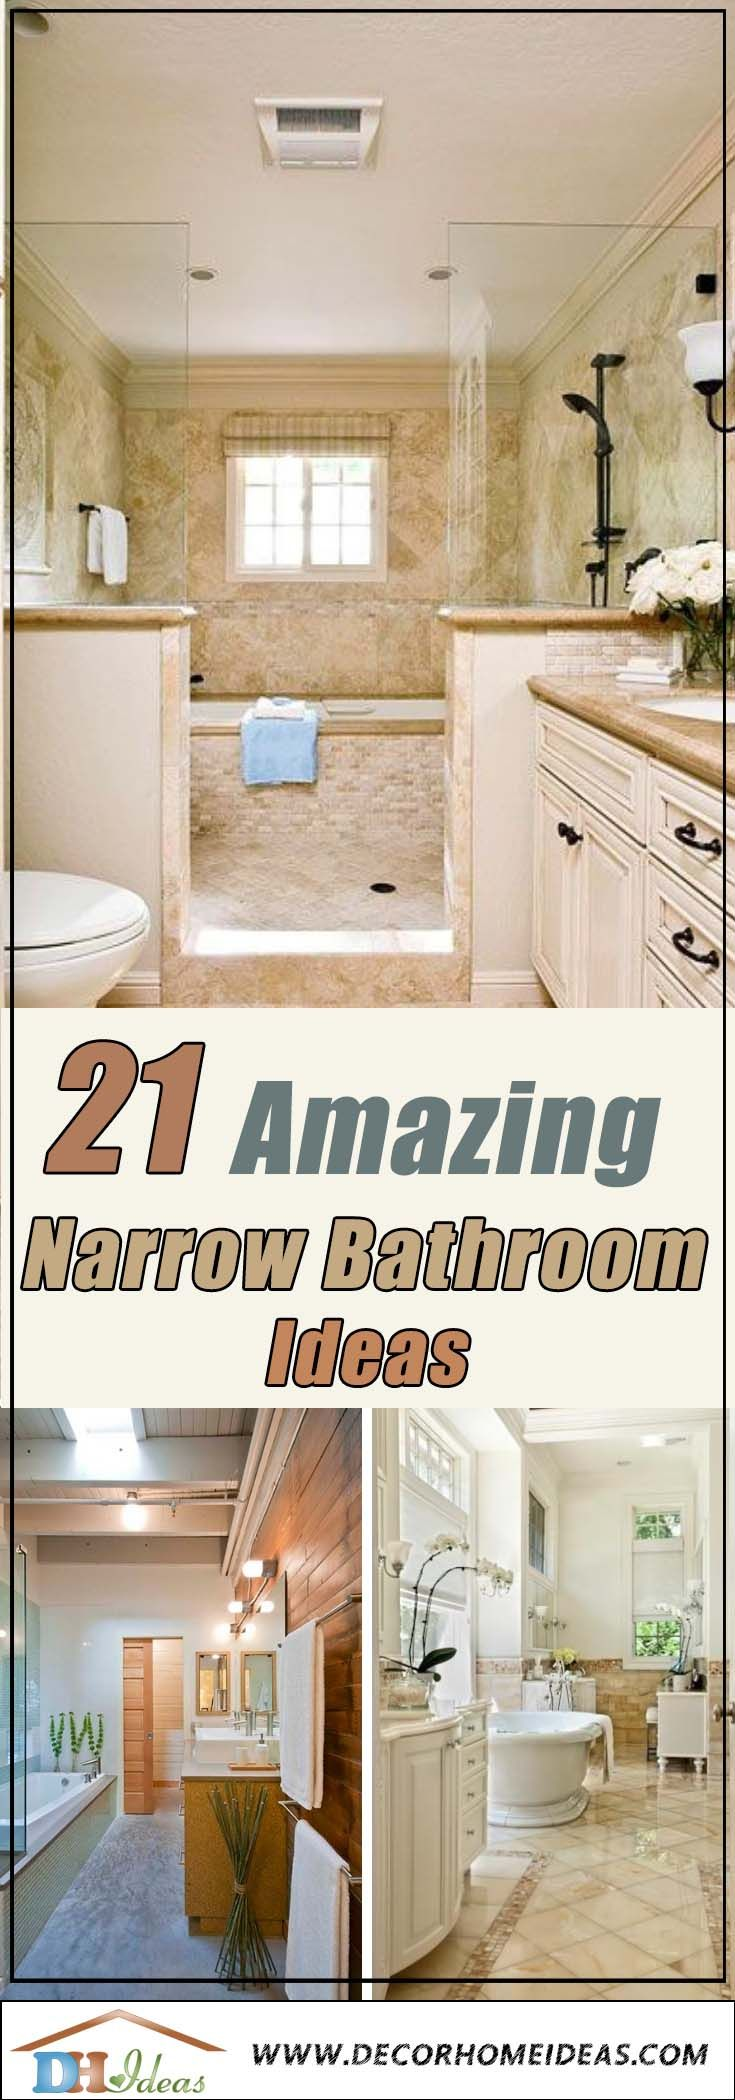 21 Amazing Narrow Bathroom Ideas | Decor Home Ideas | Long ...